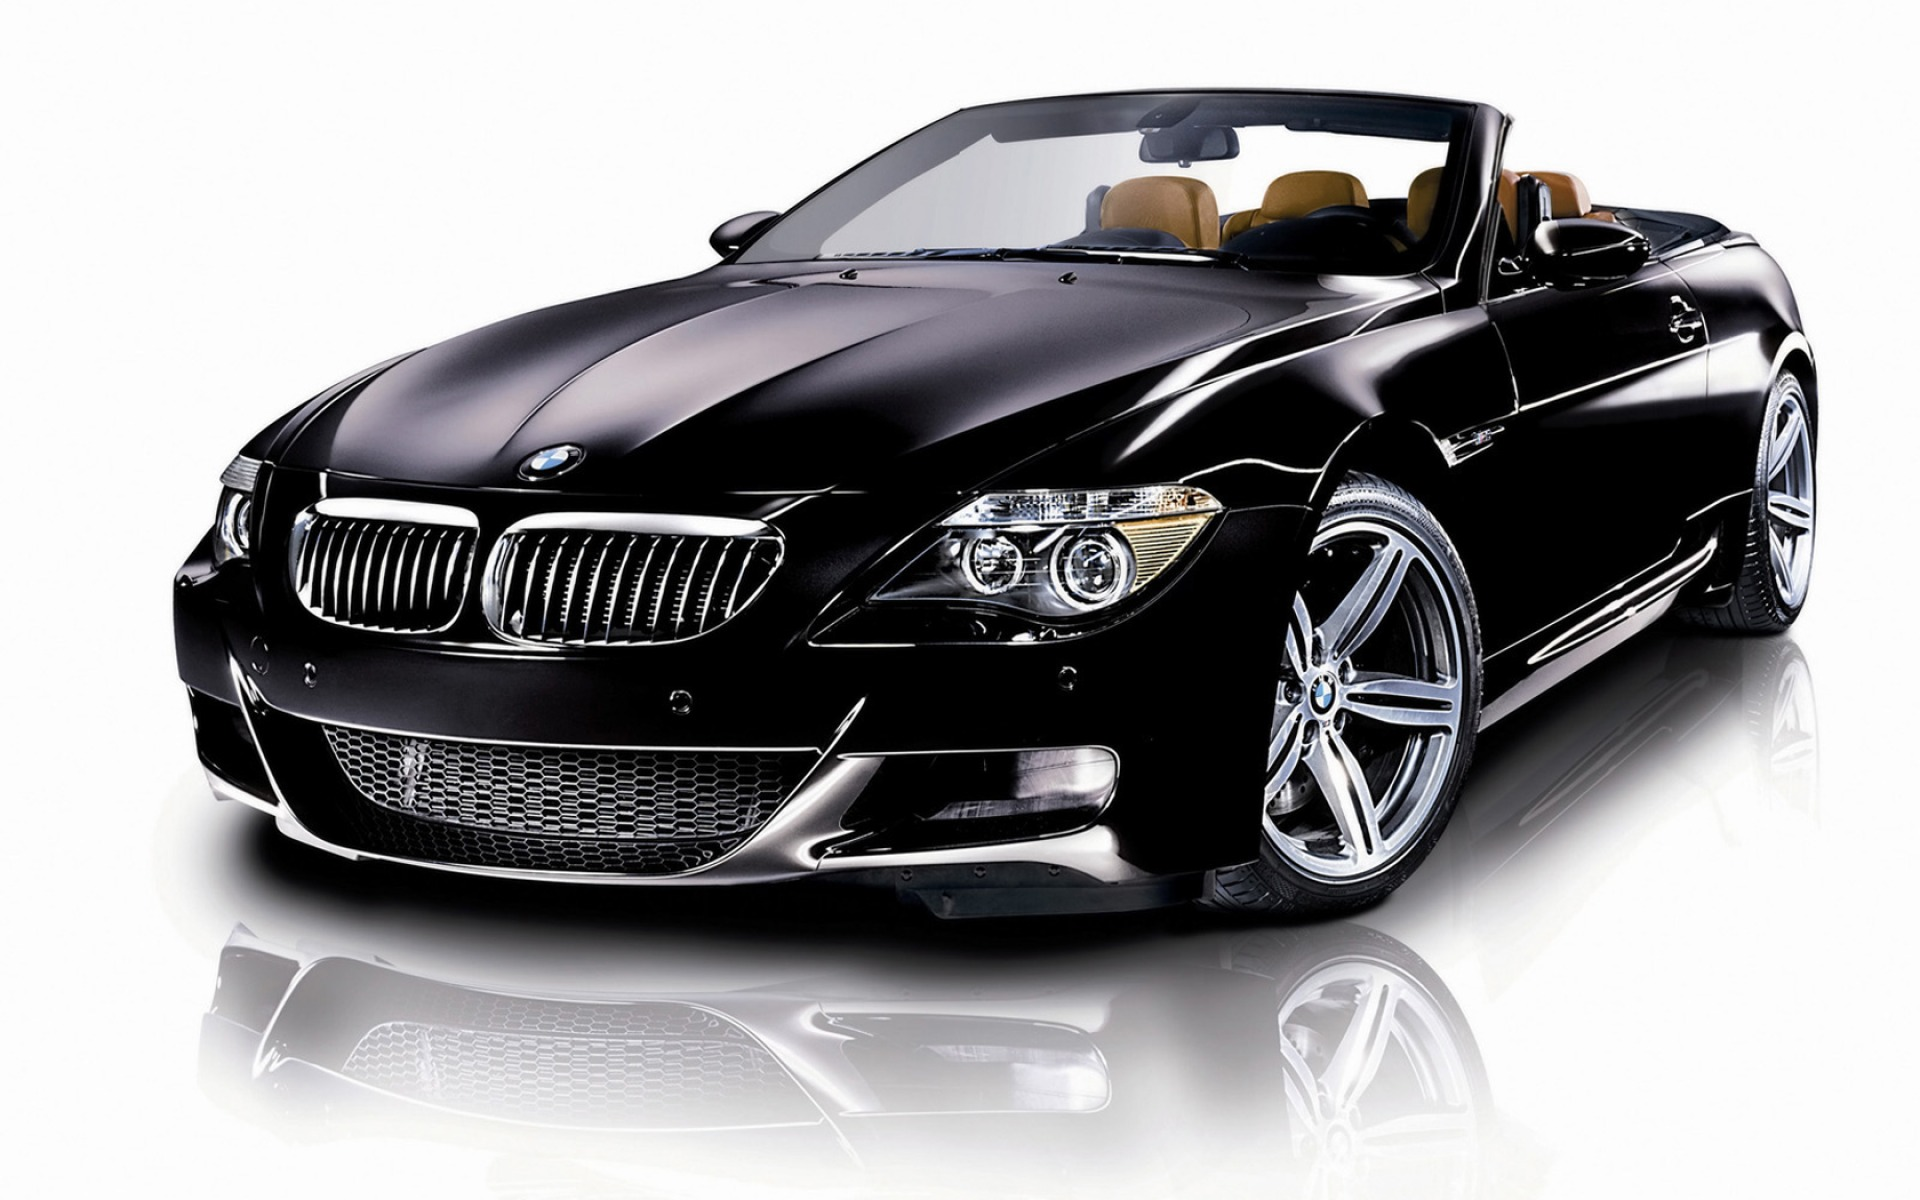 Ultrablogus  Winsome Bmw Car Wallpaper Wallpapers For Free Download About   With Lovable Bmw M Convertible Wallpaper Bmw Cars With Astounding Stain Remover For Car Interior Also  Chevy Silverado Interior In Addition Interior Chrysler  And Sonata  Interior As Well As Santa Fe Sport Interior Additionally Chevy Impala  Interior From Allfreedownloadcom With Ultrablogus  Lovable Bmw Car Wallpaper Wallpapers For Free Download About   With Astounding Bmw M Convertible Wallpaper Bmw Cars And Winsome Stain Remover For Car Interior Also  Chevy Silverado Interior In Addition Interior Chrysler  From Allfreedownloadcom